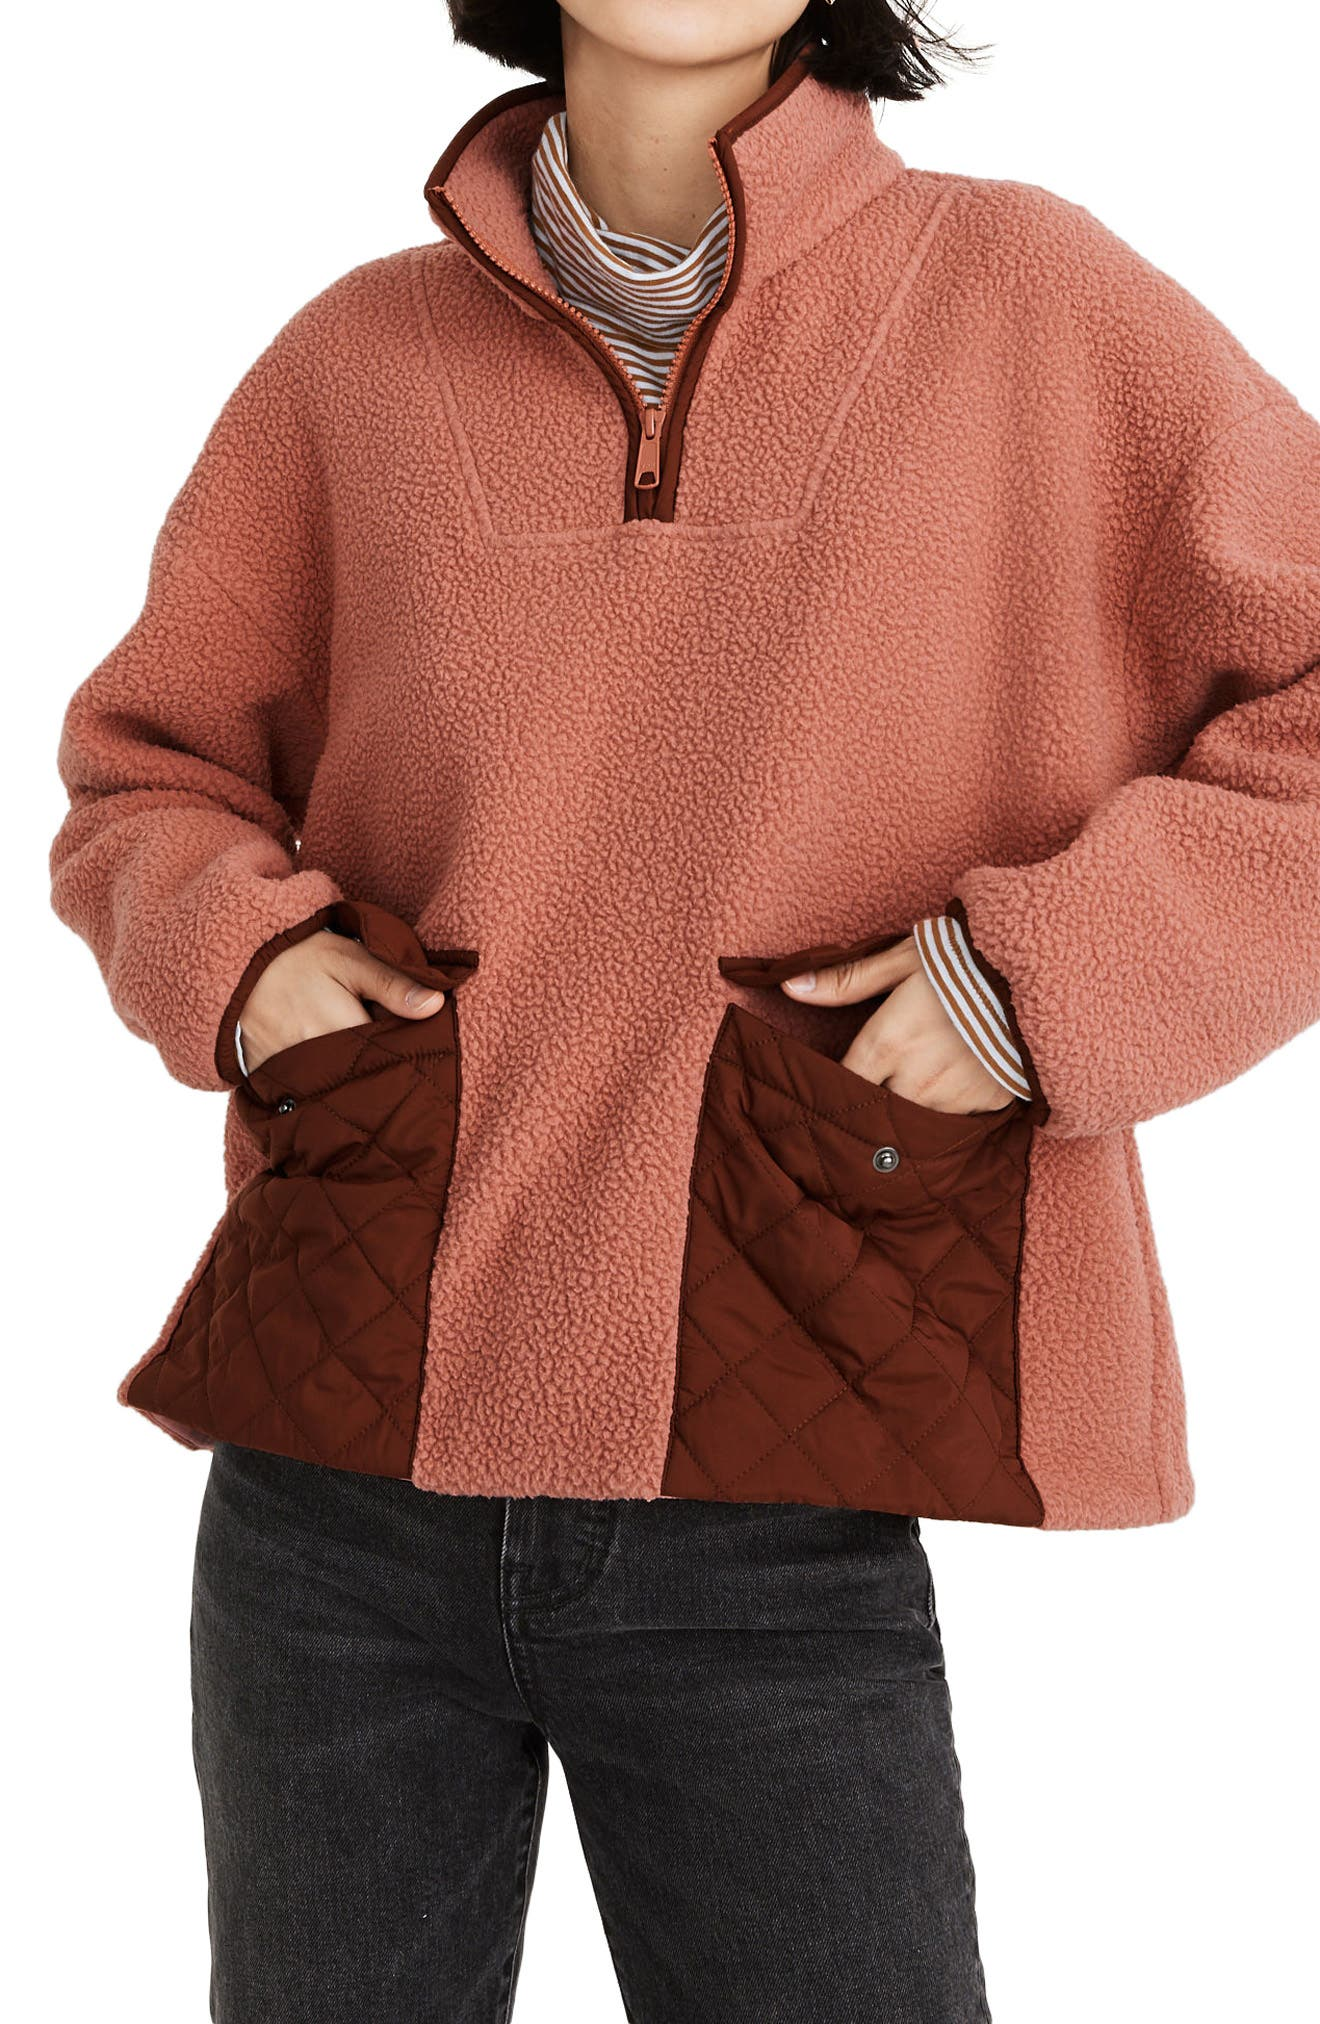 Madewell (RE)SOURCED FLEECE QUILTED POCKET POPOVER JACKET